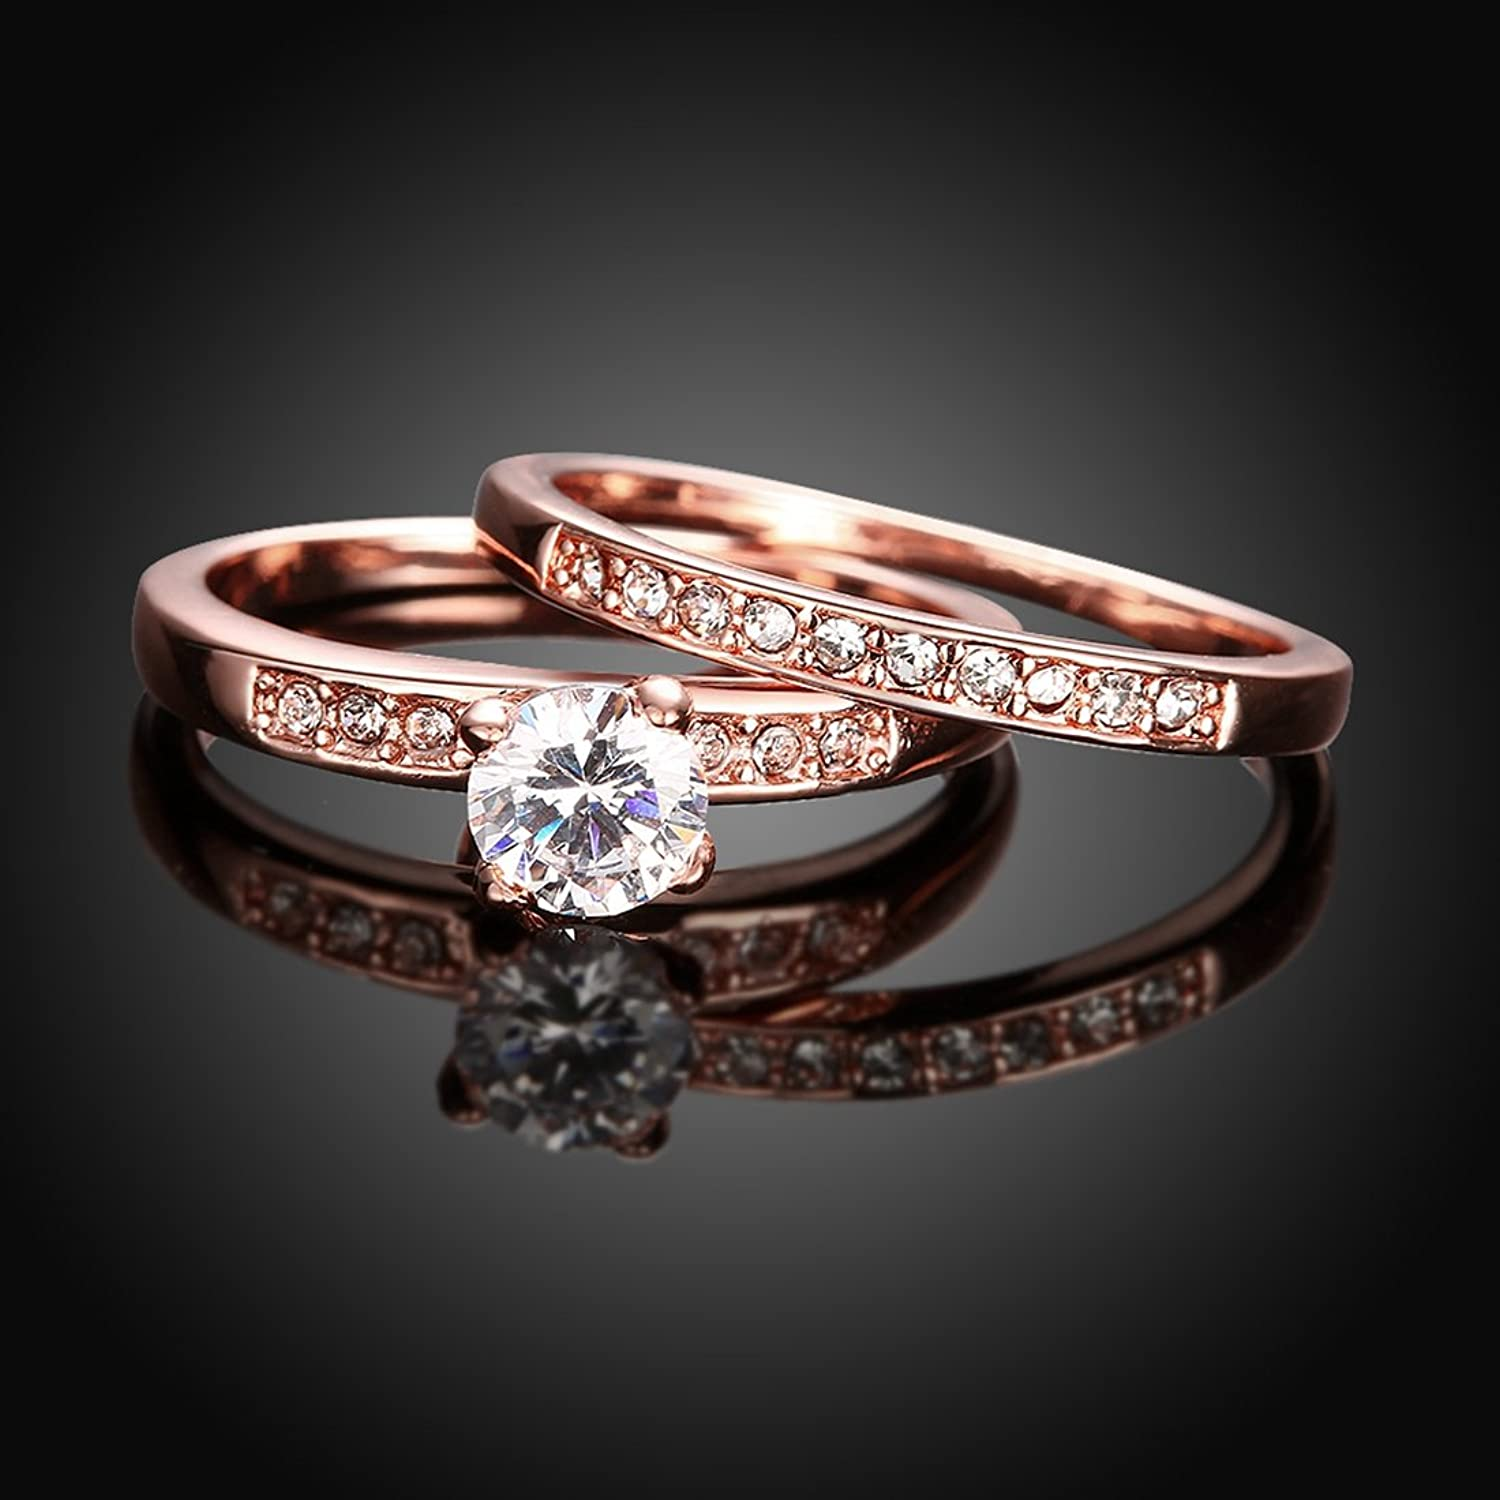 amazoncom eternity love womens pretty 18k rose gold plated solitaire cz crystal engagement rings set best promise rings for her anniversary wedding - Rose Gold Wedding Rings For Women